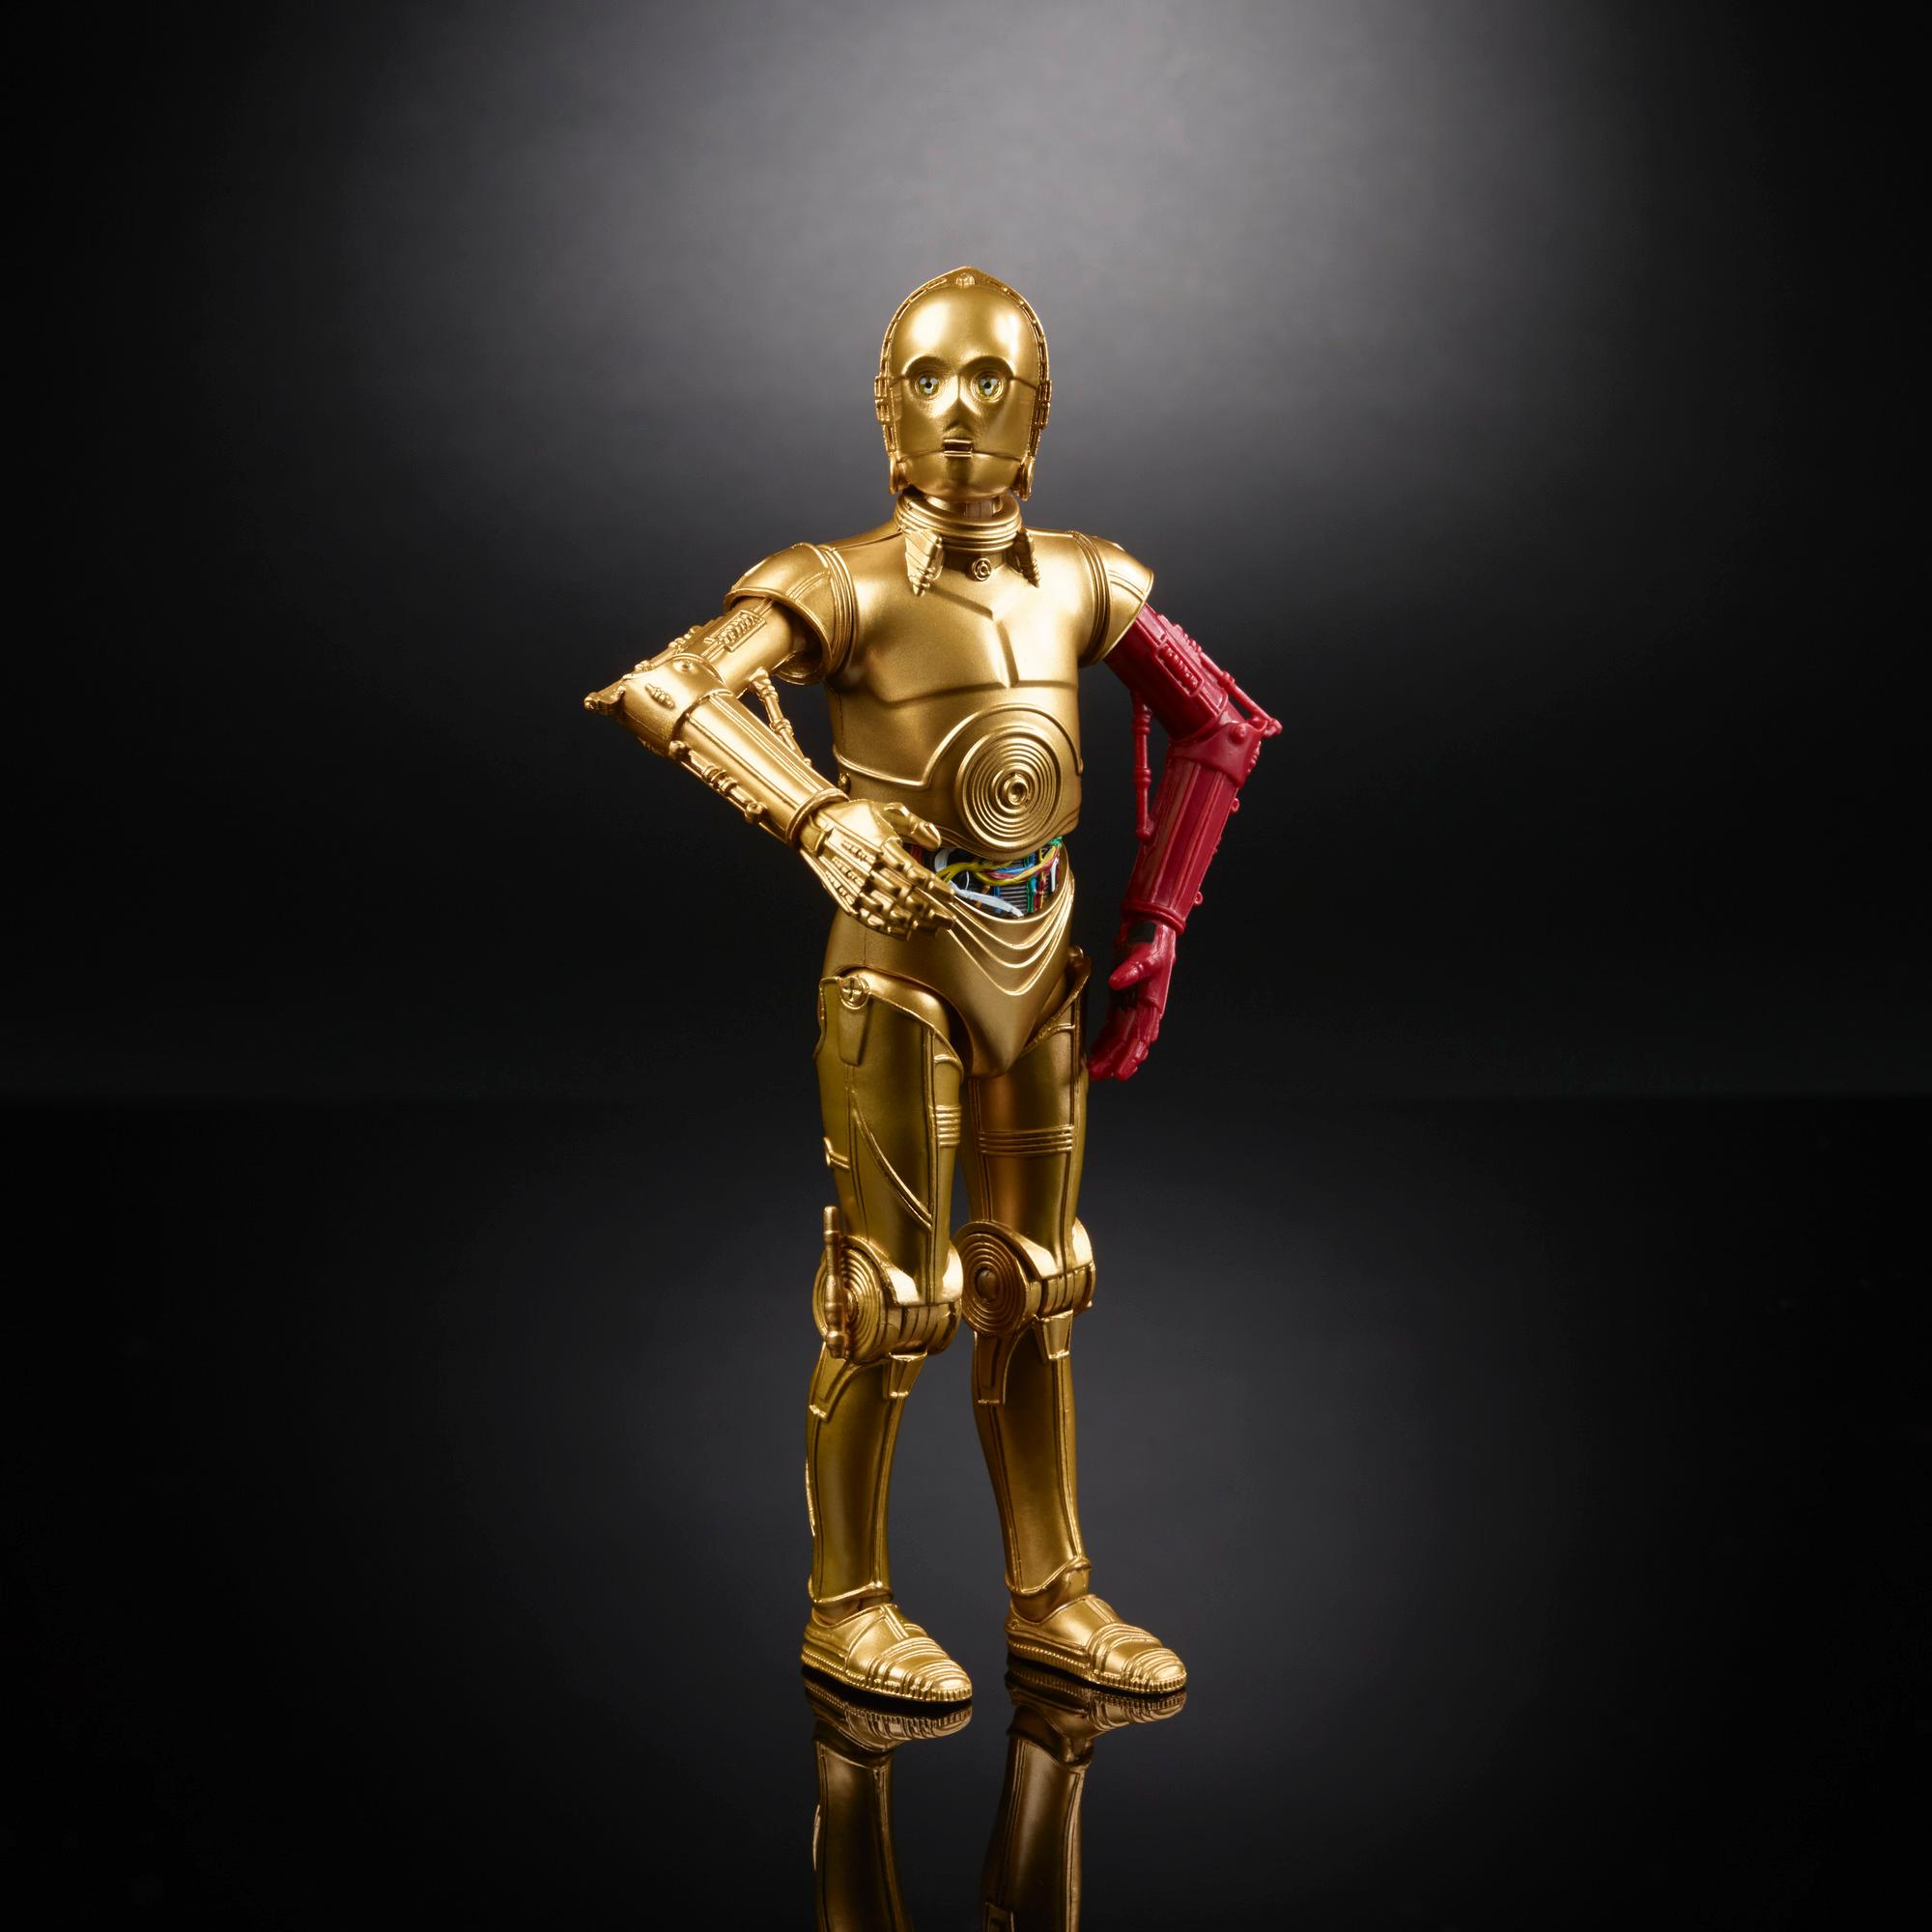 Star Wars The Black Series C-3PO